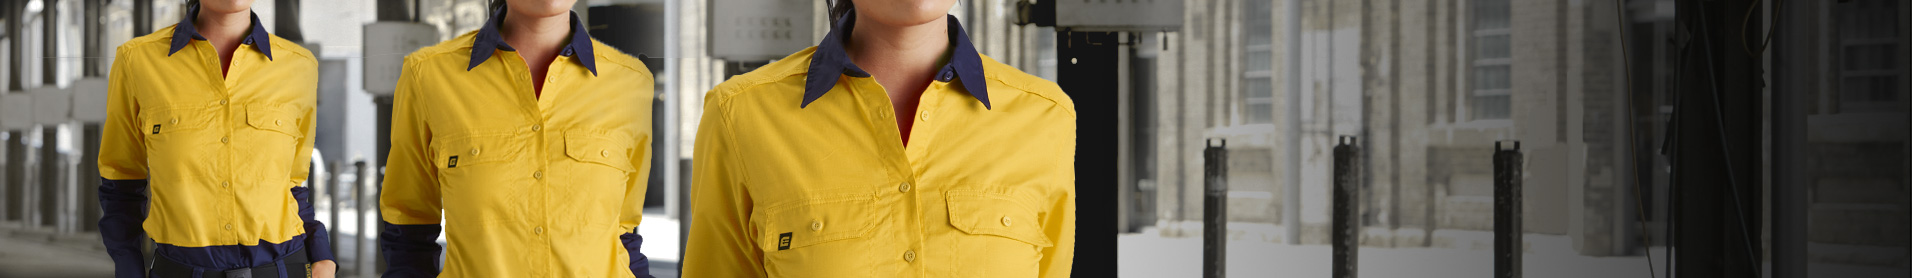 The ELEVEN workwear women's shirt are designed for a flattering women's fit, the shirts all feature the ELEVEN workwear standard sun shield collar, extra length tail and mechanical stretch fabric. To ensure all day working comfort our AeroCool range also features perforated 3M retro reflective tape.